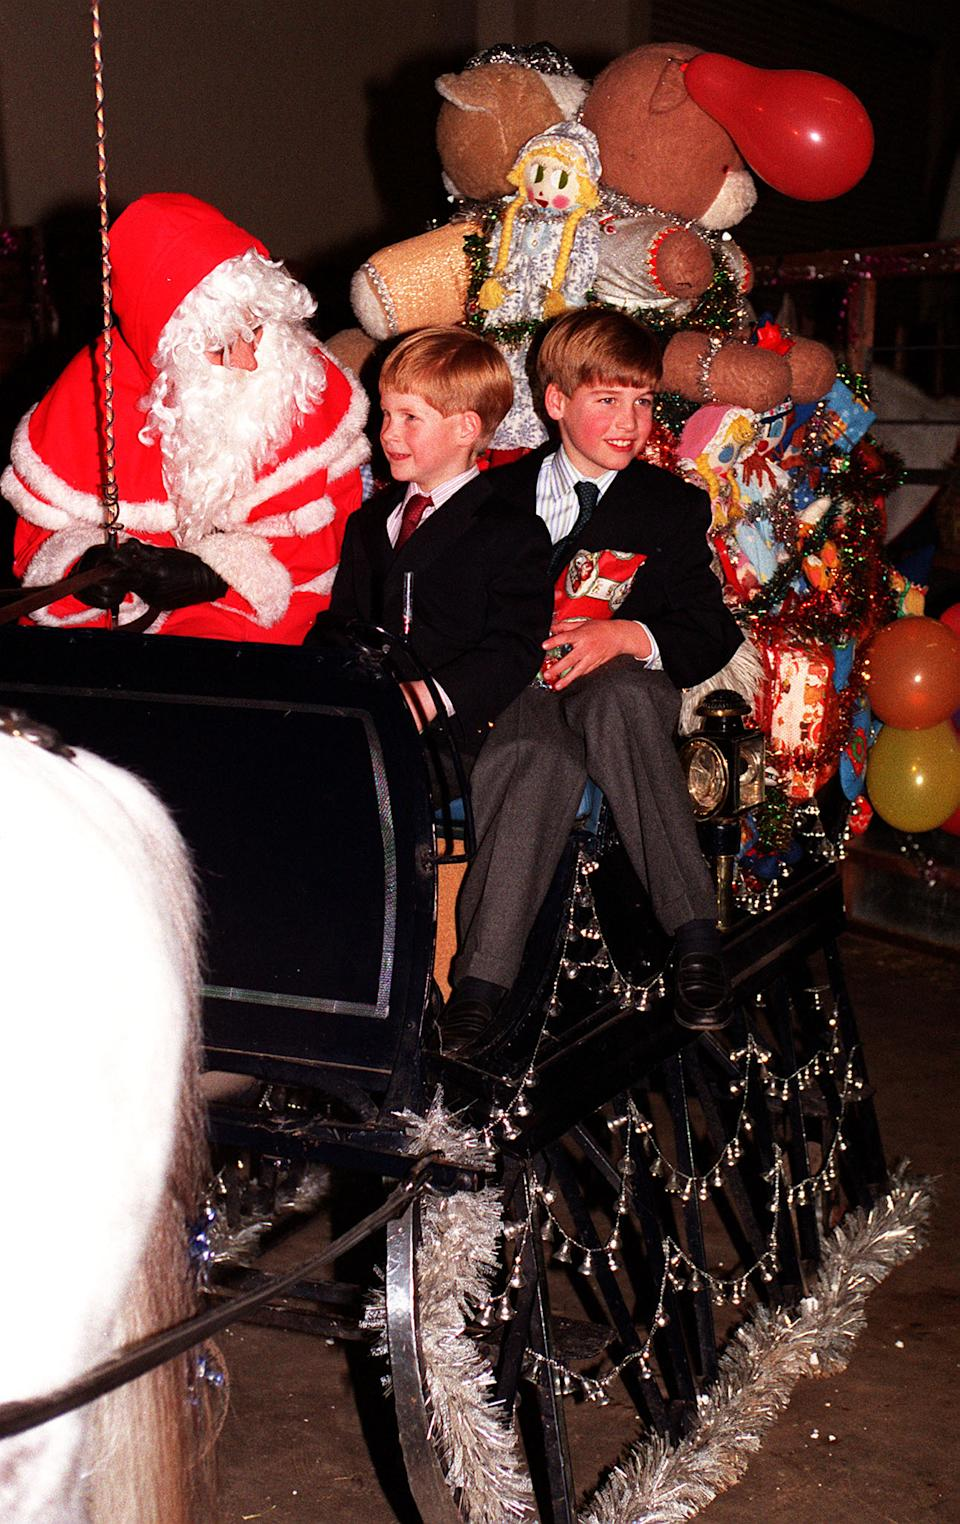 <p>William and Harry meeting Father Christmas during an exhibition at Olympia London in 1990. His mother wanted him to experience some normality in his life. (PA Photos)</p>